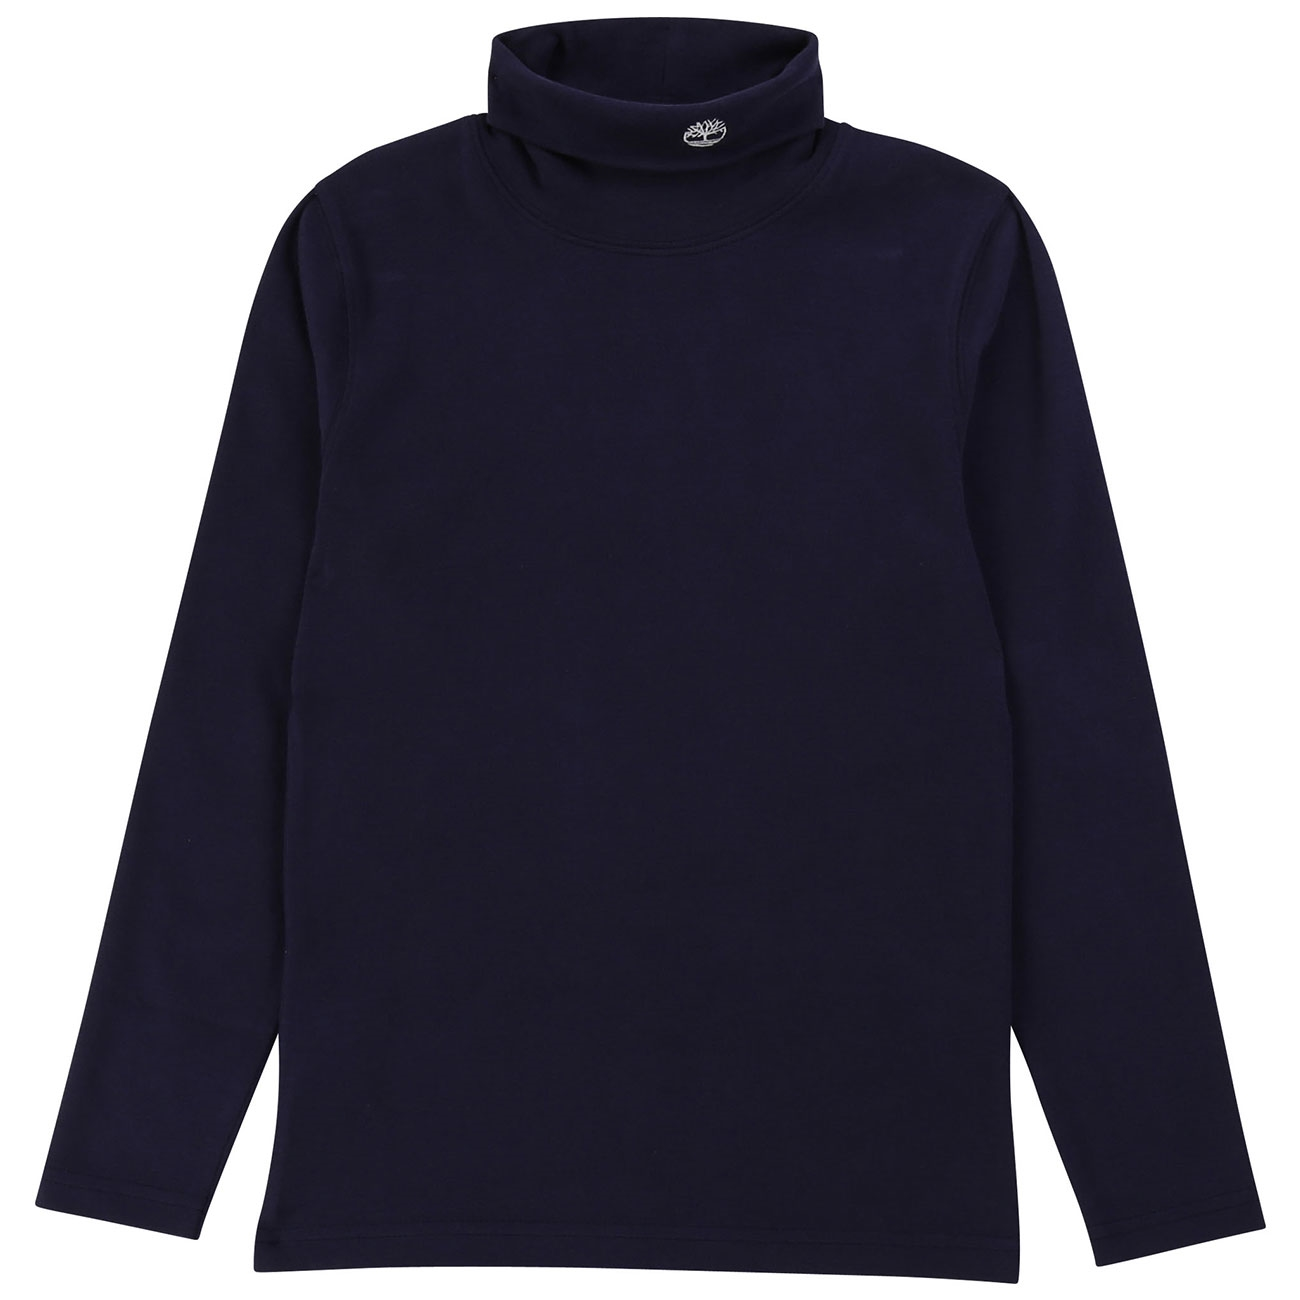 timberland-thin-sweater-bluse-blouse-navy-blue-T25Q30-1